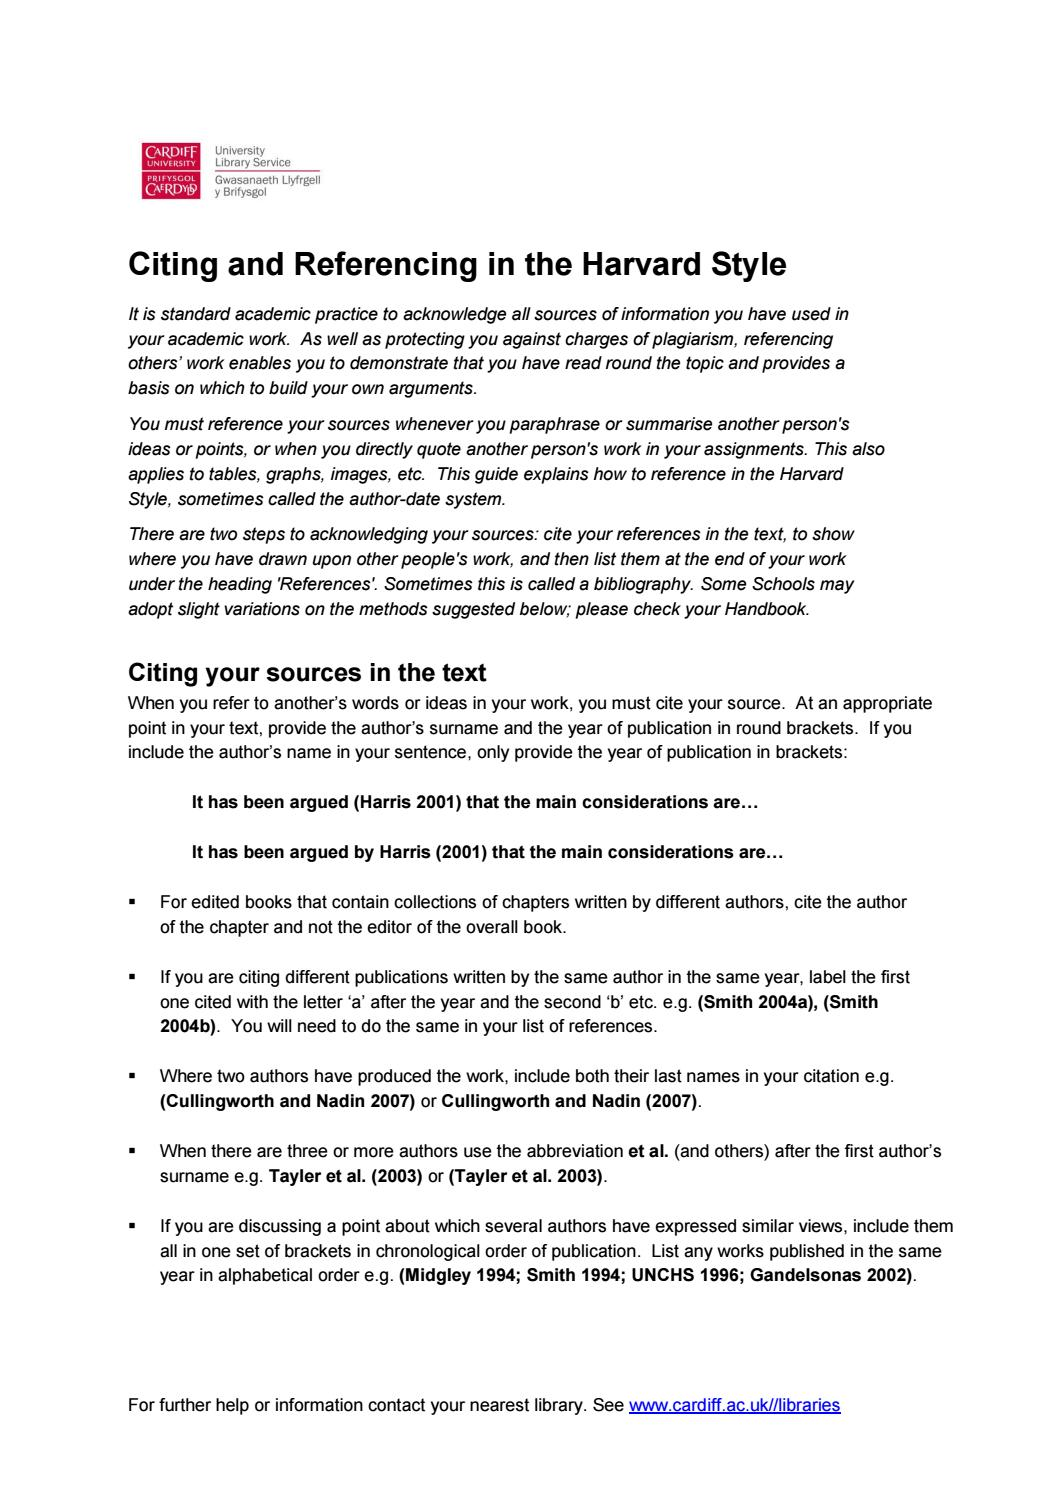 Citing And Referencing In The Harvard Style By Hcare Library Guides   Cardiff University  Issuu